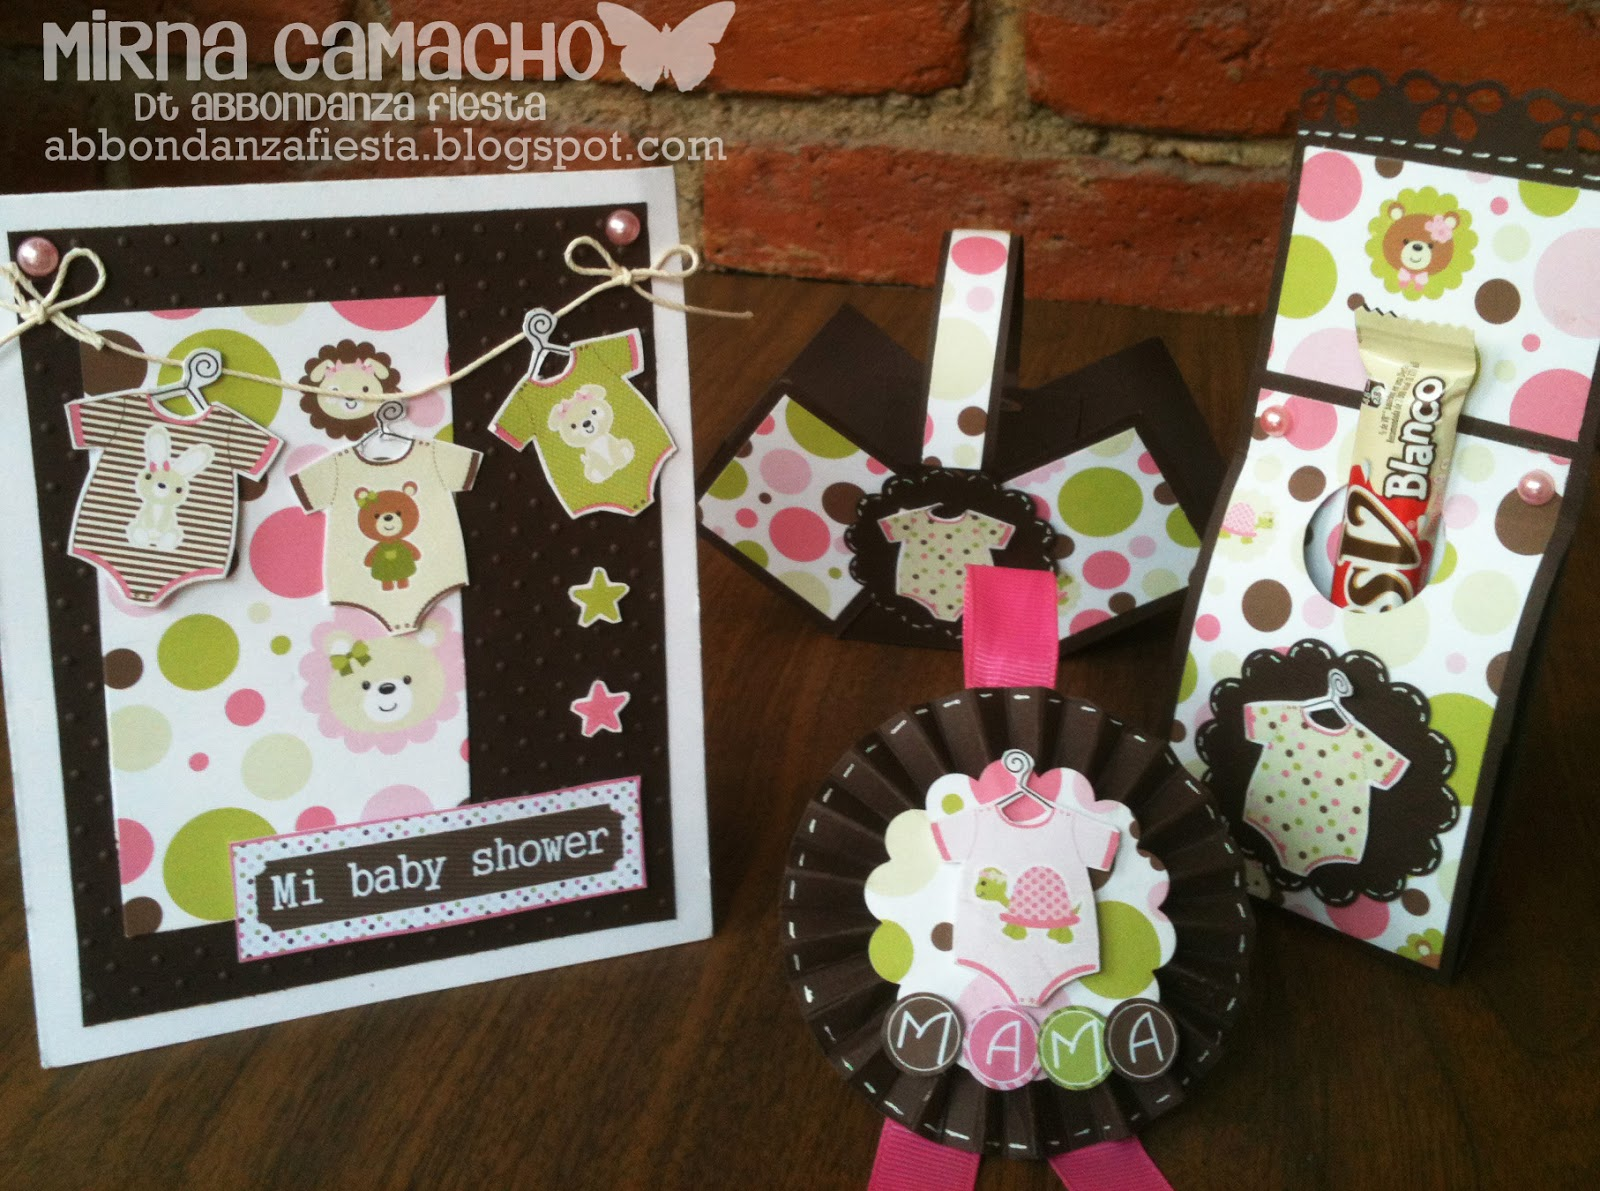 Kit para baby shower de ni a abbondanza fiesta papel - Fiesta baby shower nina ...